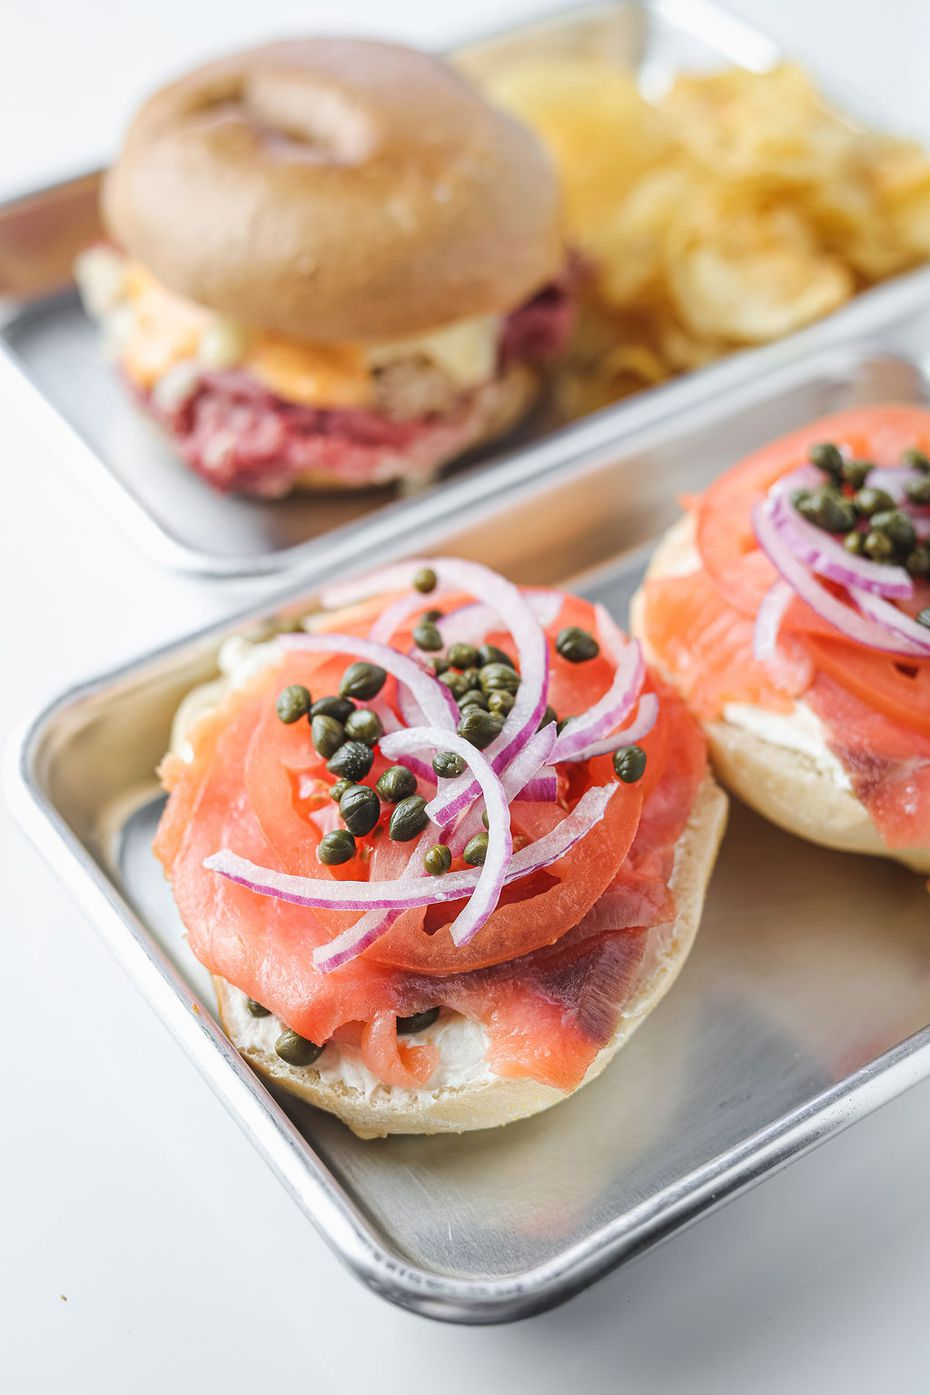 In addition to selling bagels and lox (pictured here), Bagel Cafe 21 will also sell tubs of lox-cream cheese when it opens in 2021 in Richardson.